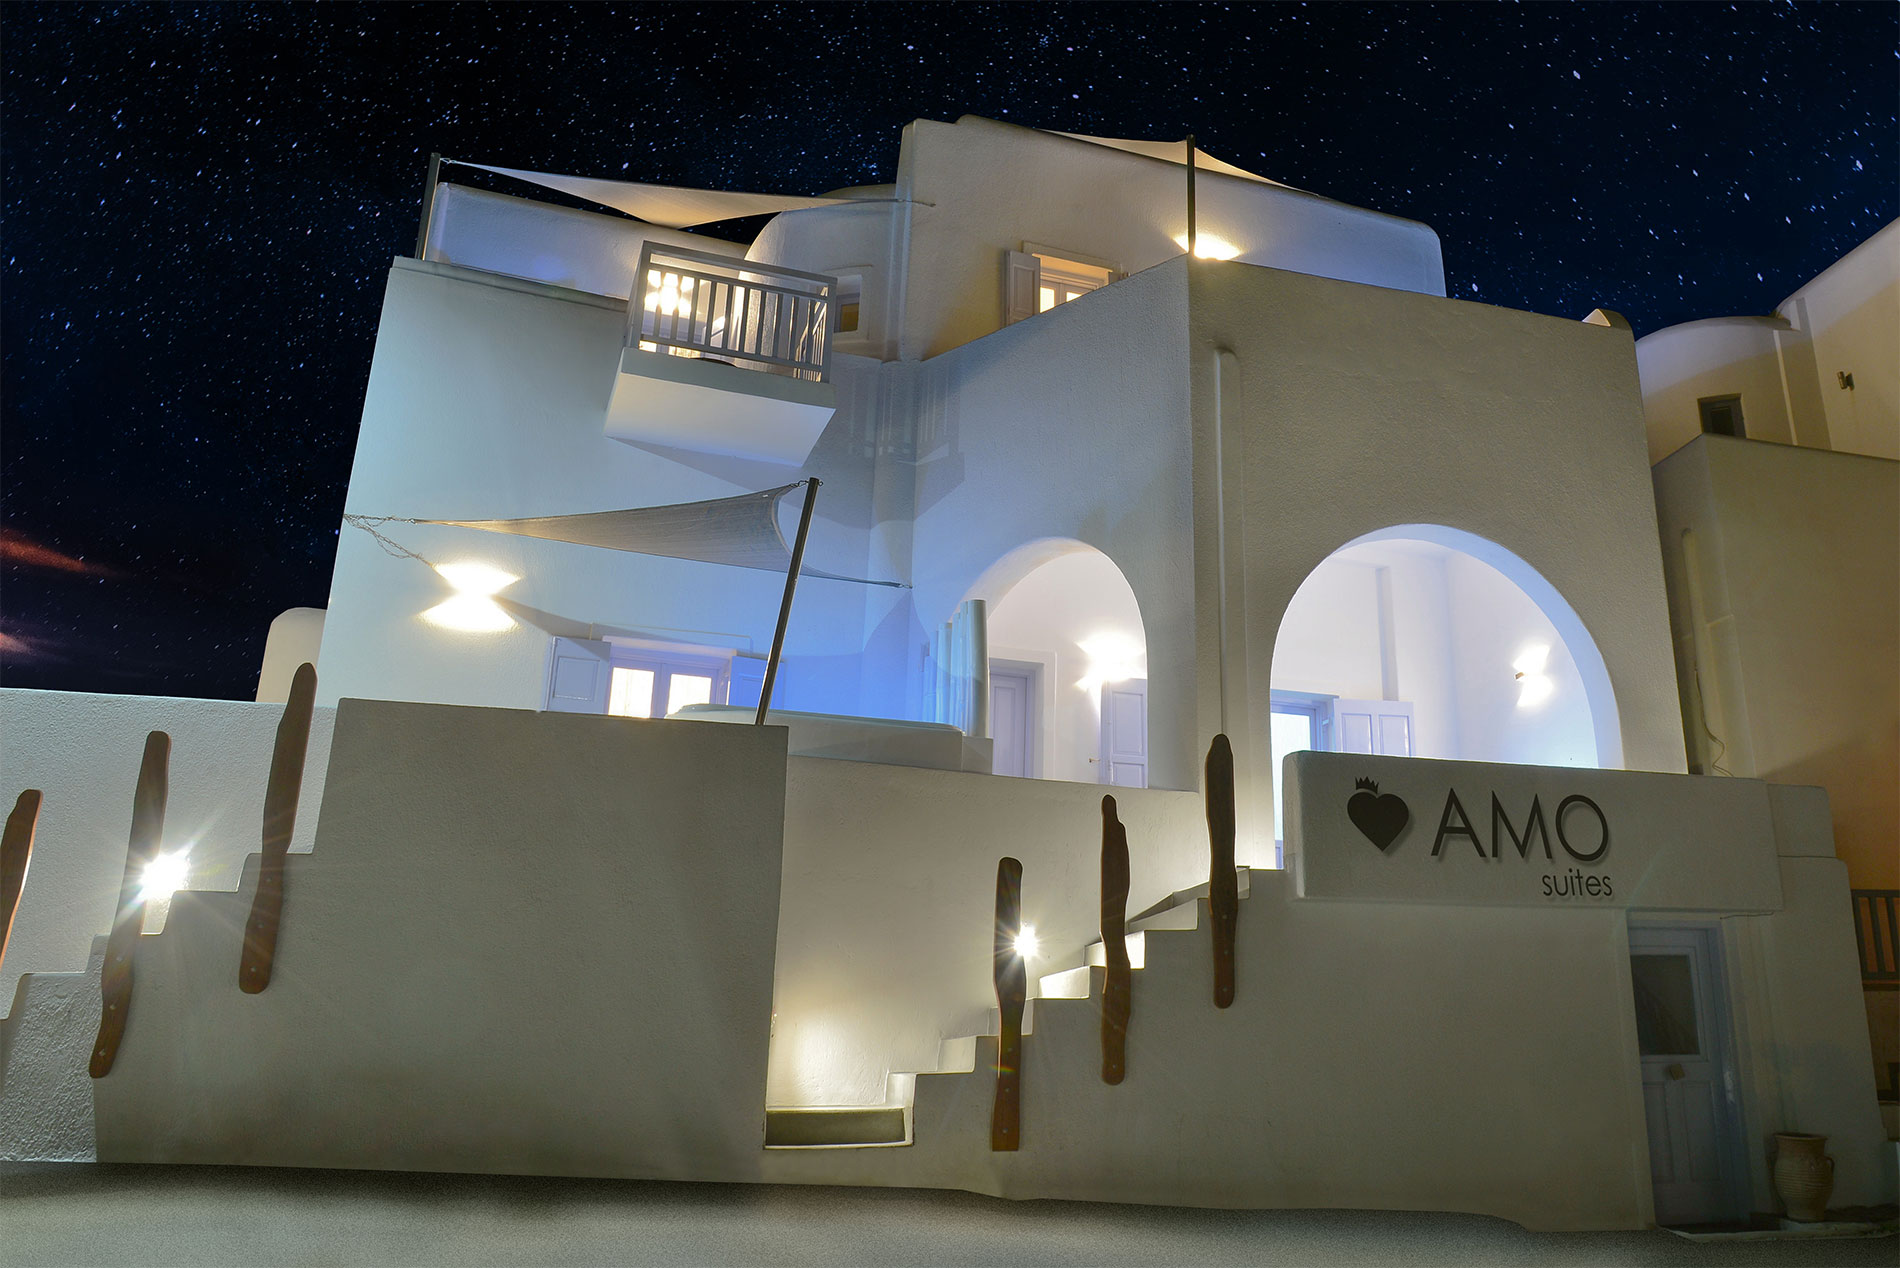 Amo Suites - Folegandros - Exterior views